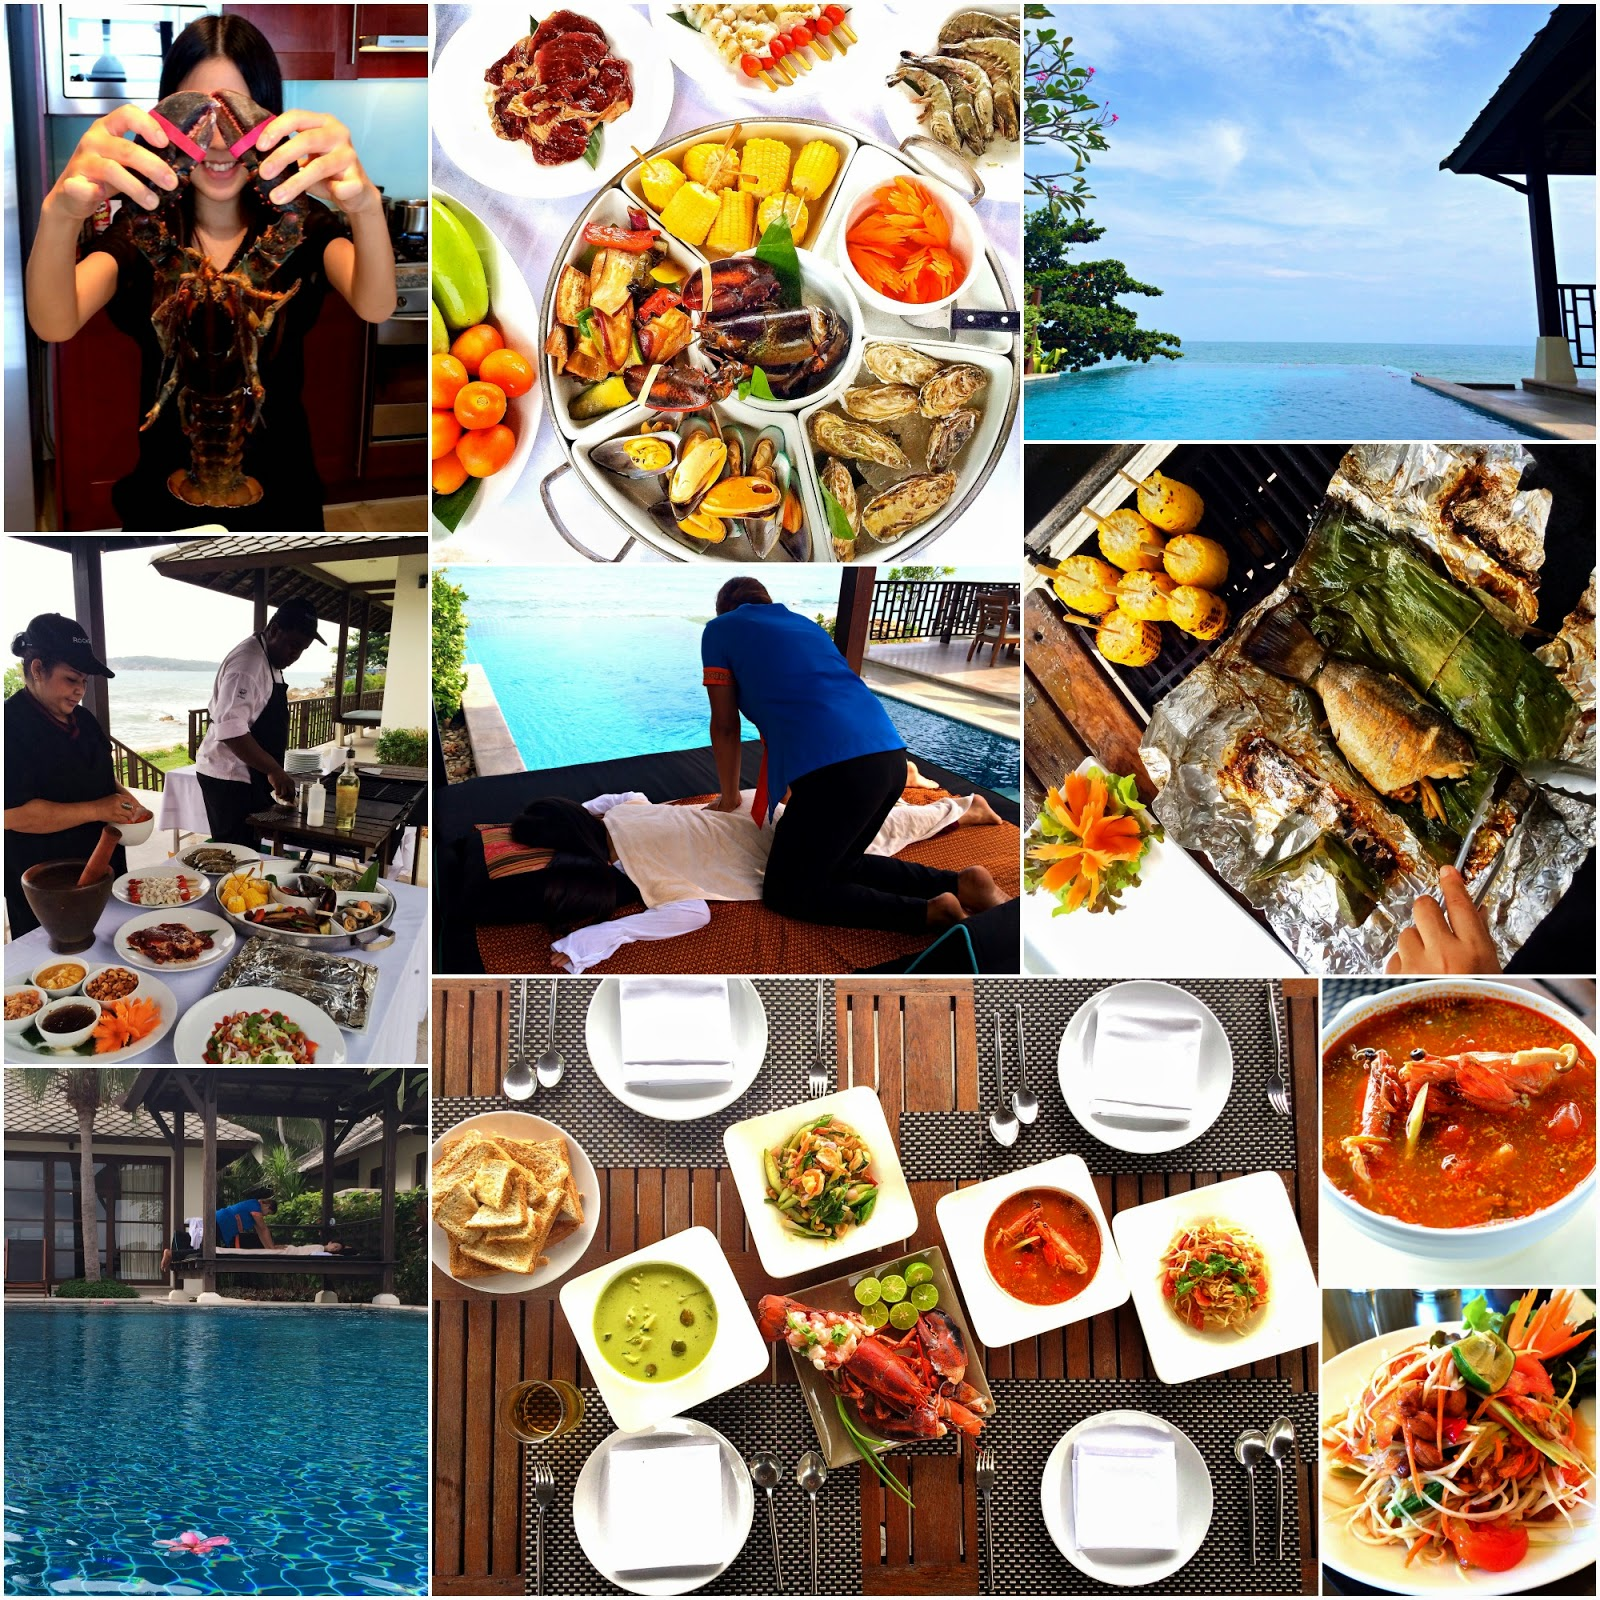 蘇梅島:Kanda Residences - In Villa Cooking Class,BBQ & Spa